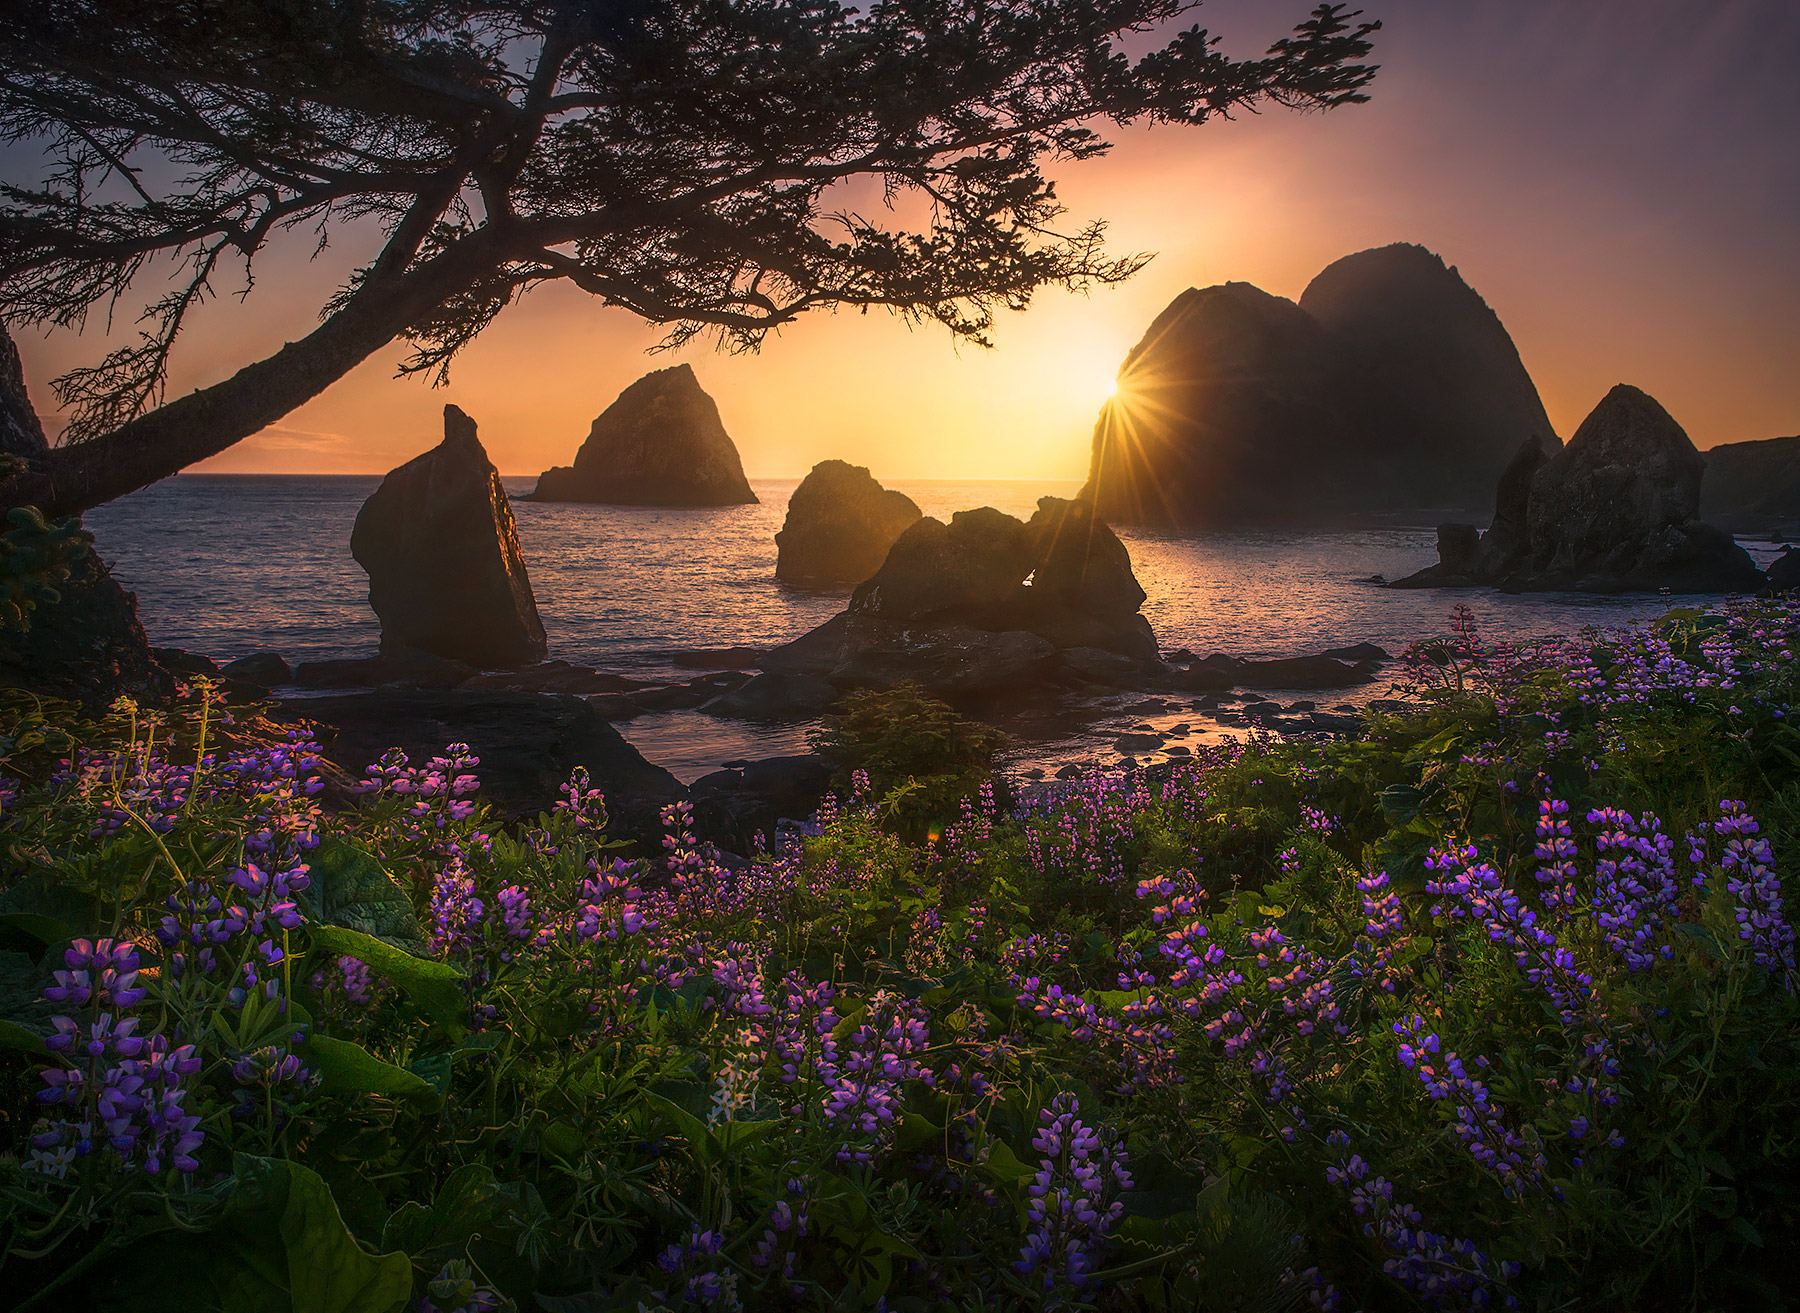 Splendid spring blooms adorn this wild coastline in NorCal.  Numerous sea stack towers are visible behind.